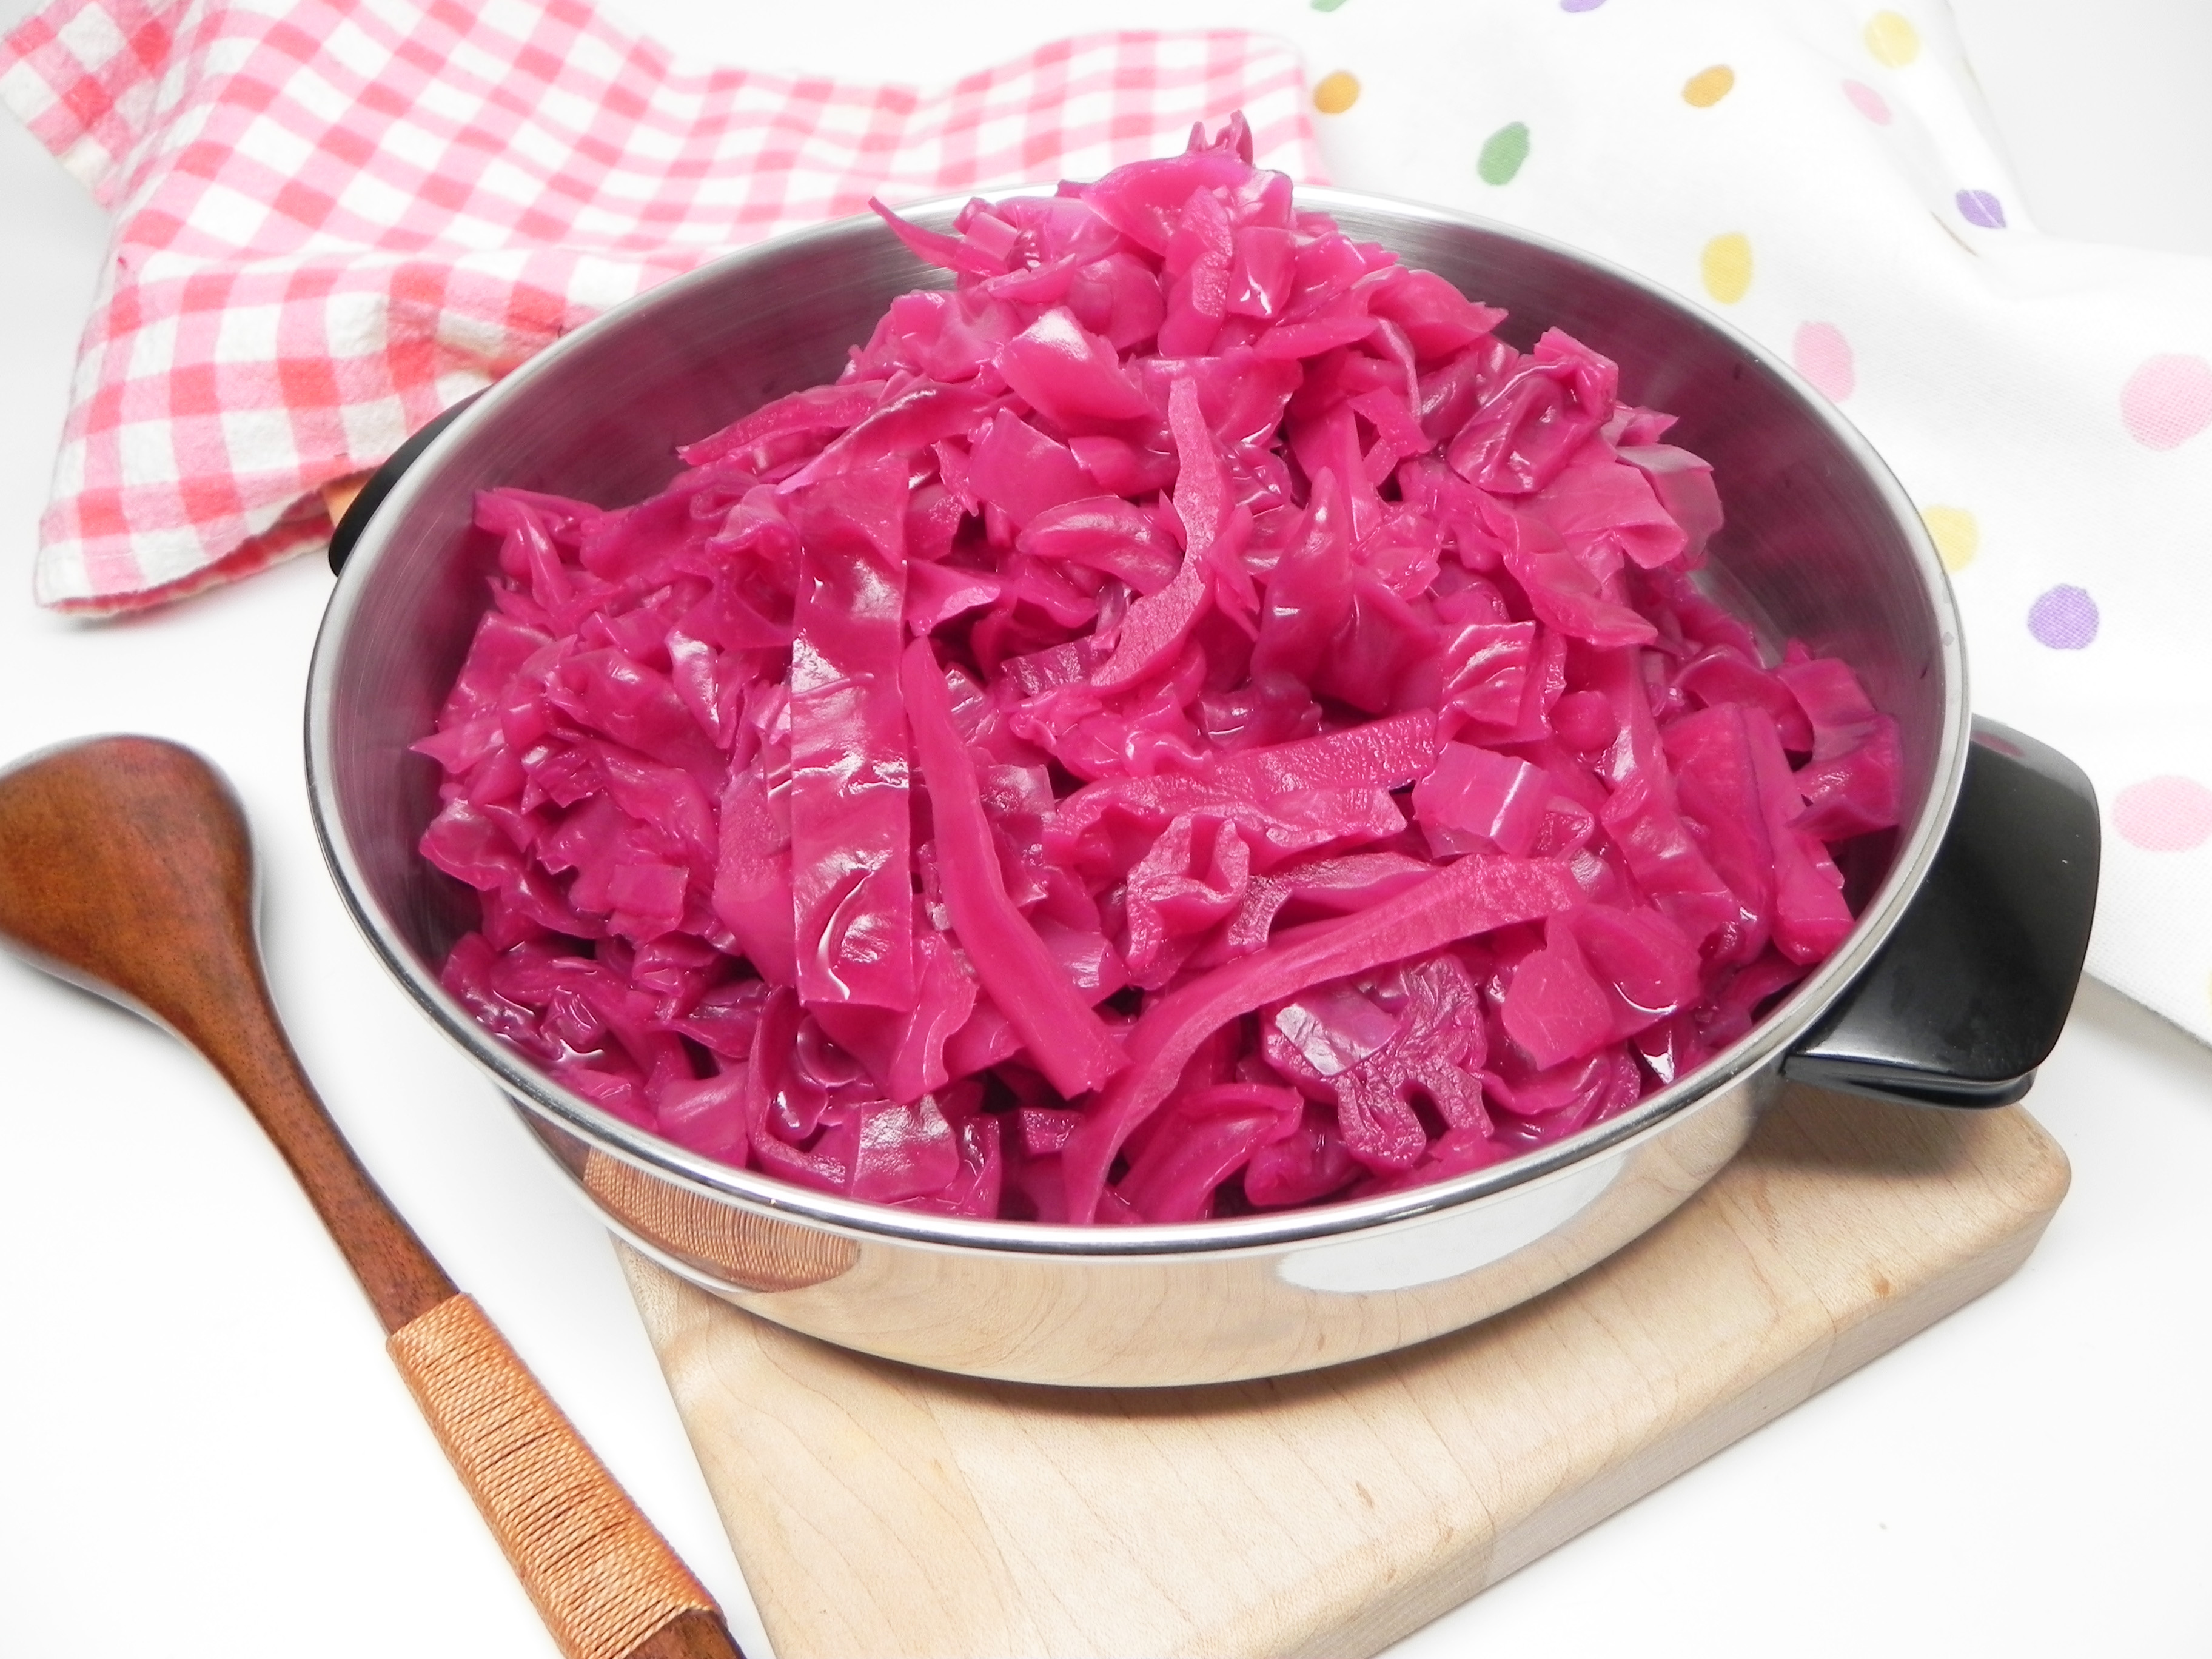 Danish Christmas Red Cabbage image